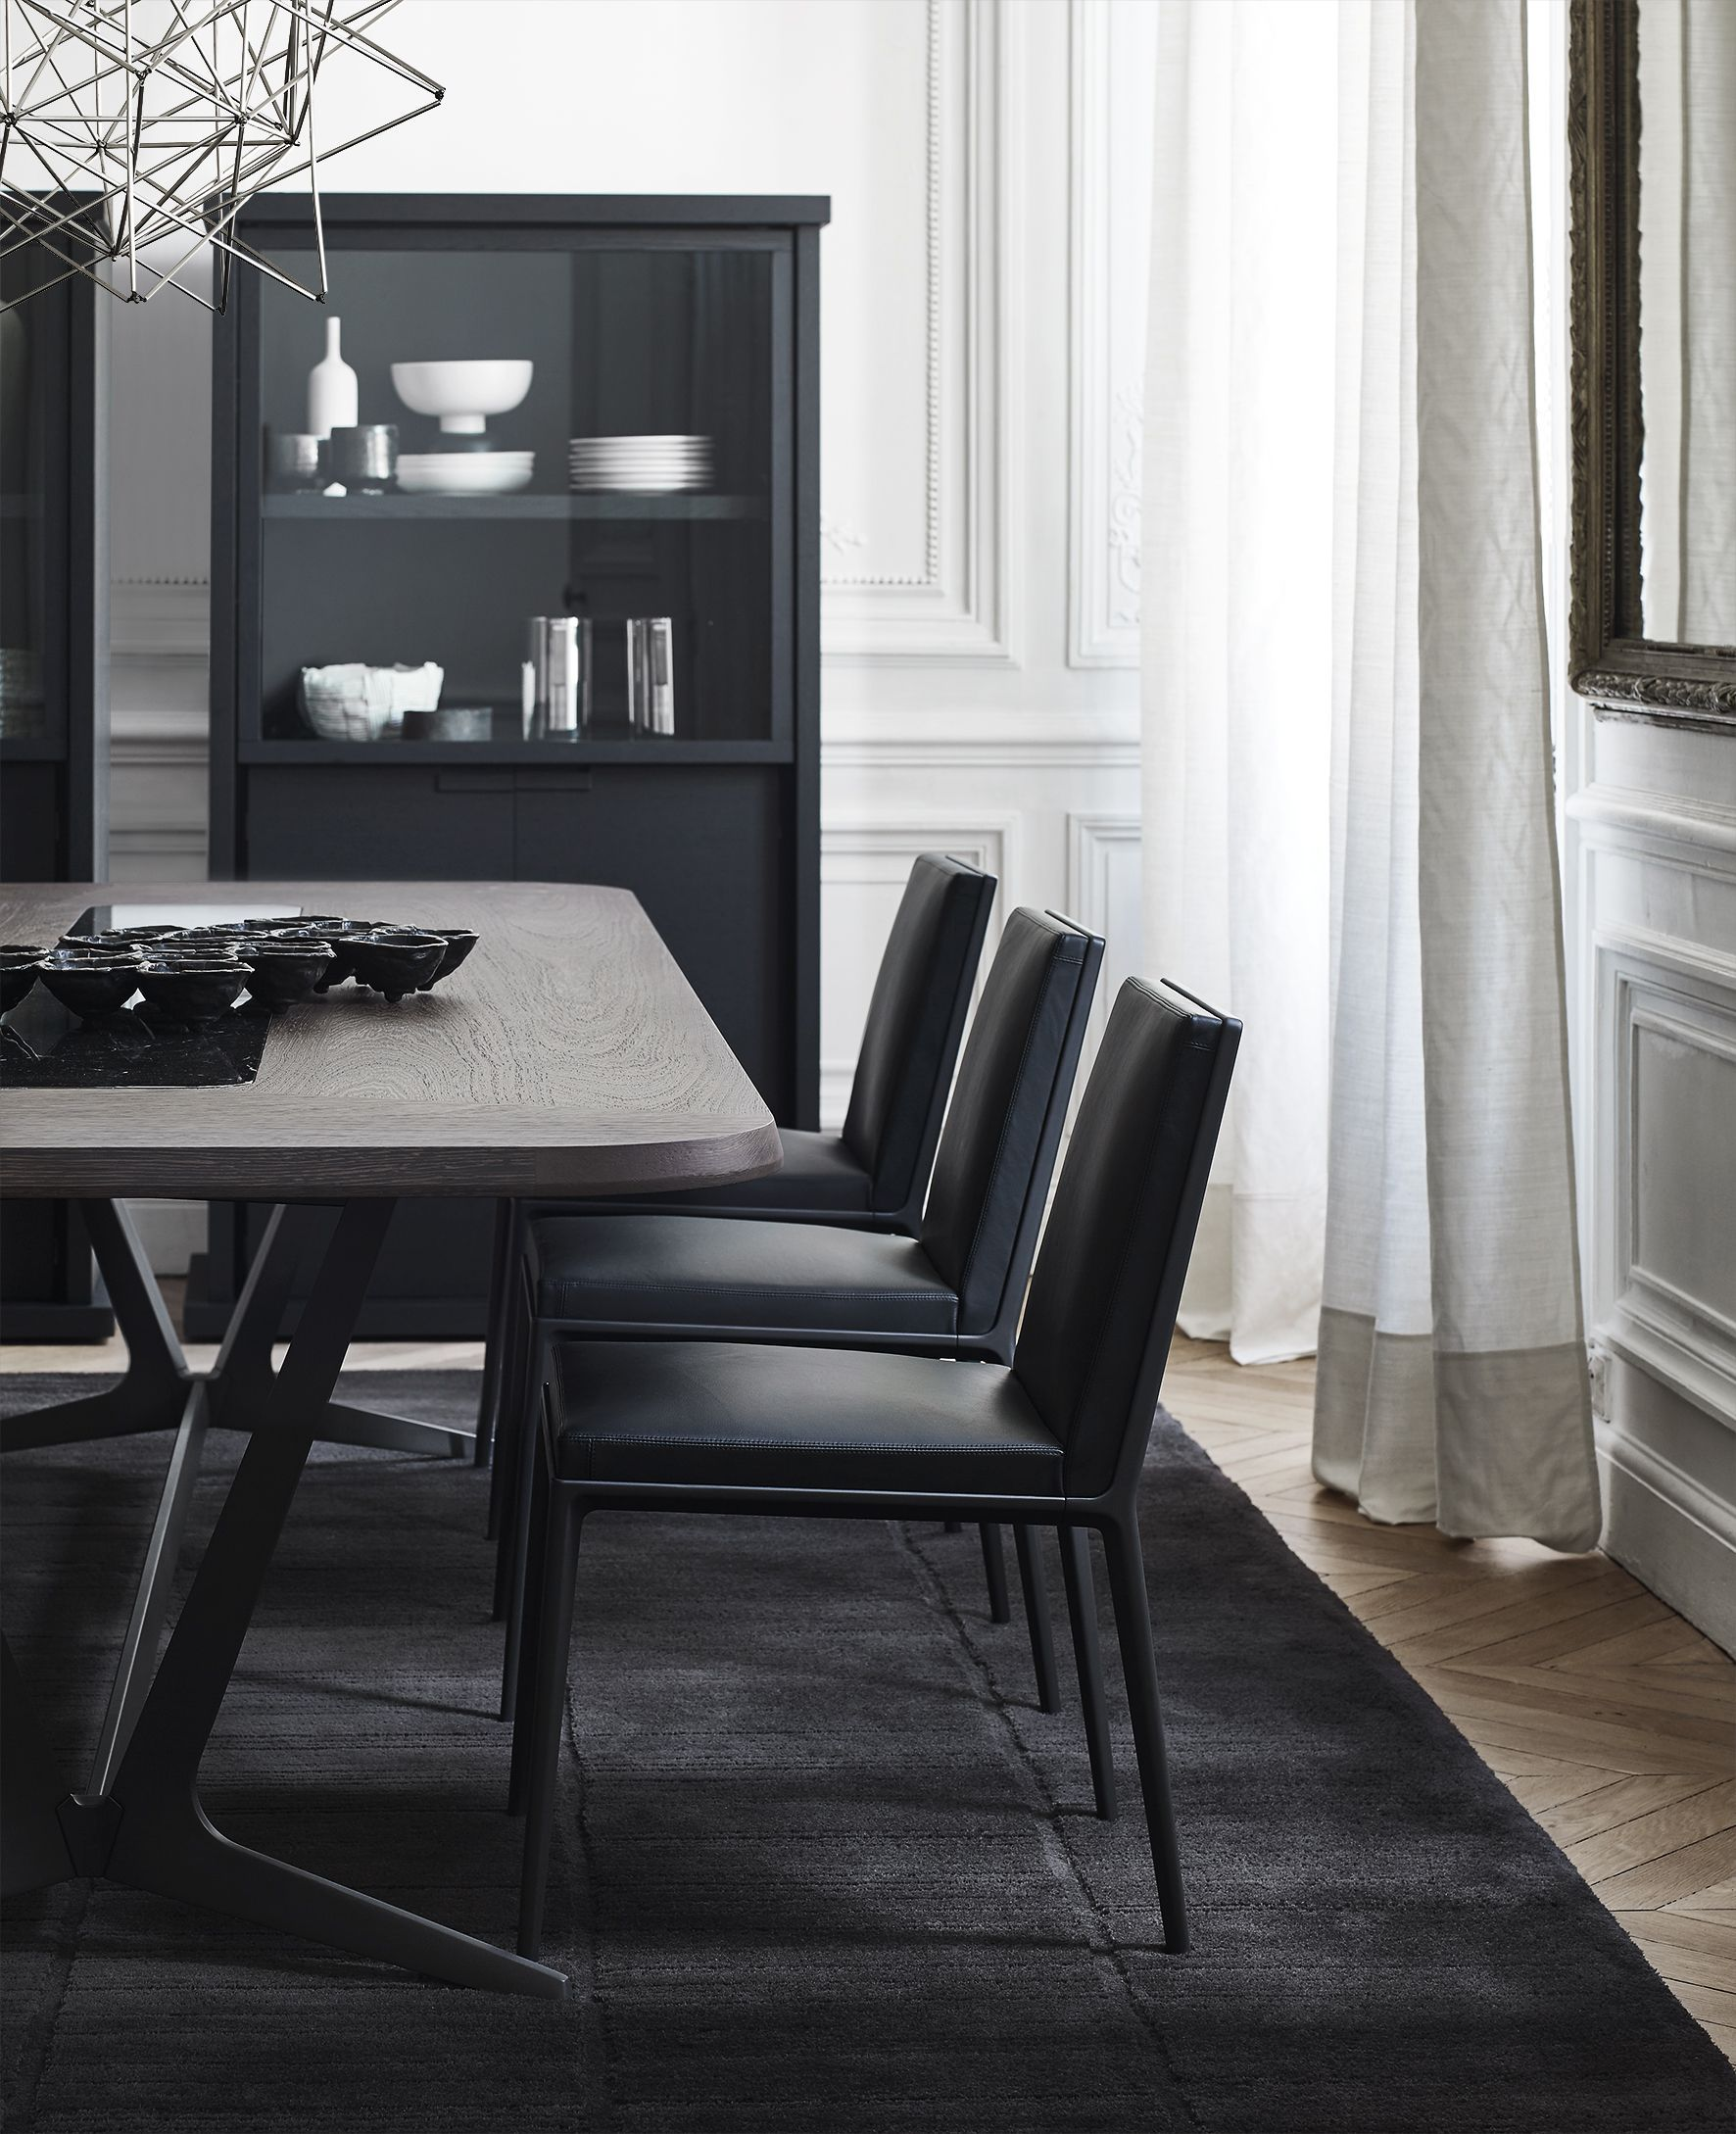 2 Colours For A Luxury Dining Room Insplosion Blog Living Room